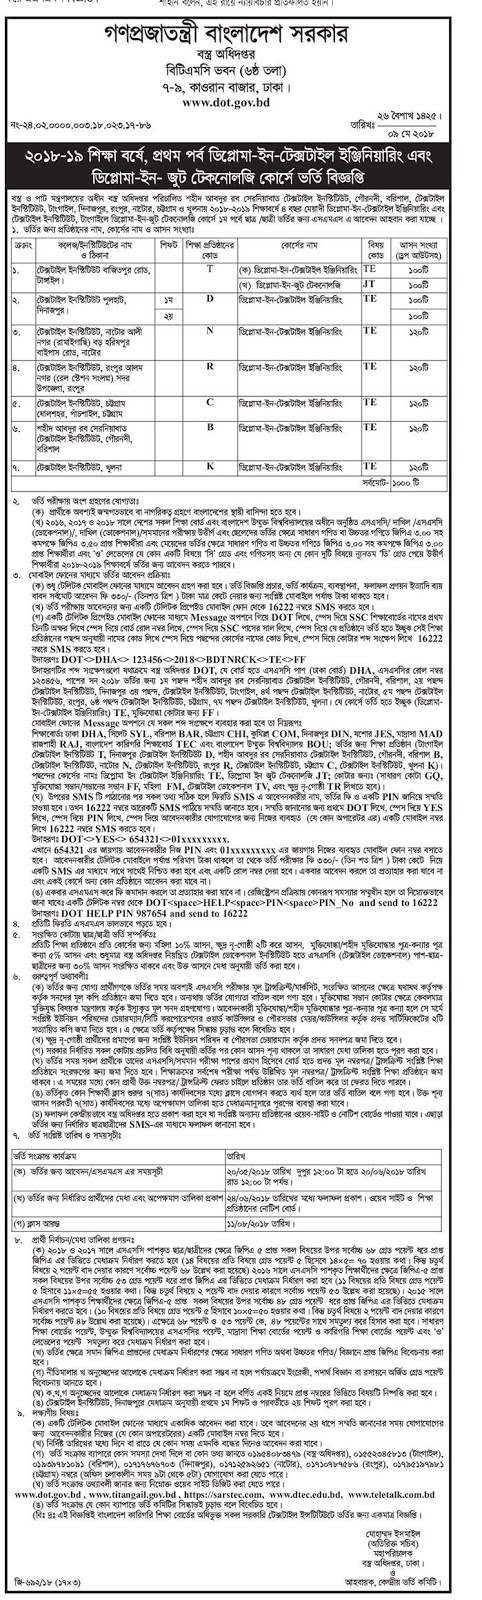 Department of Textiles Admission Circular 2018-19